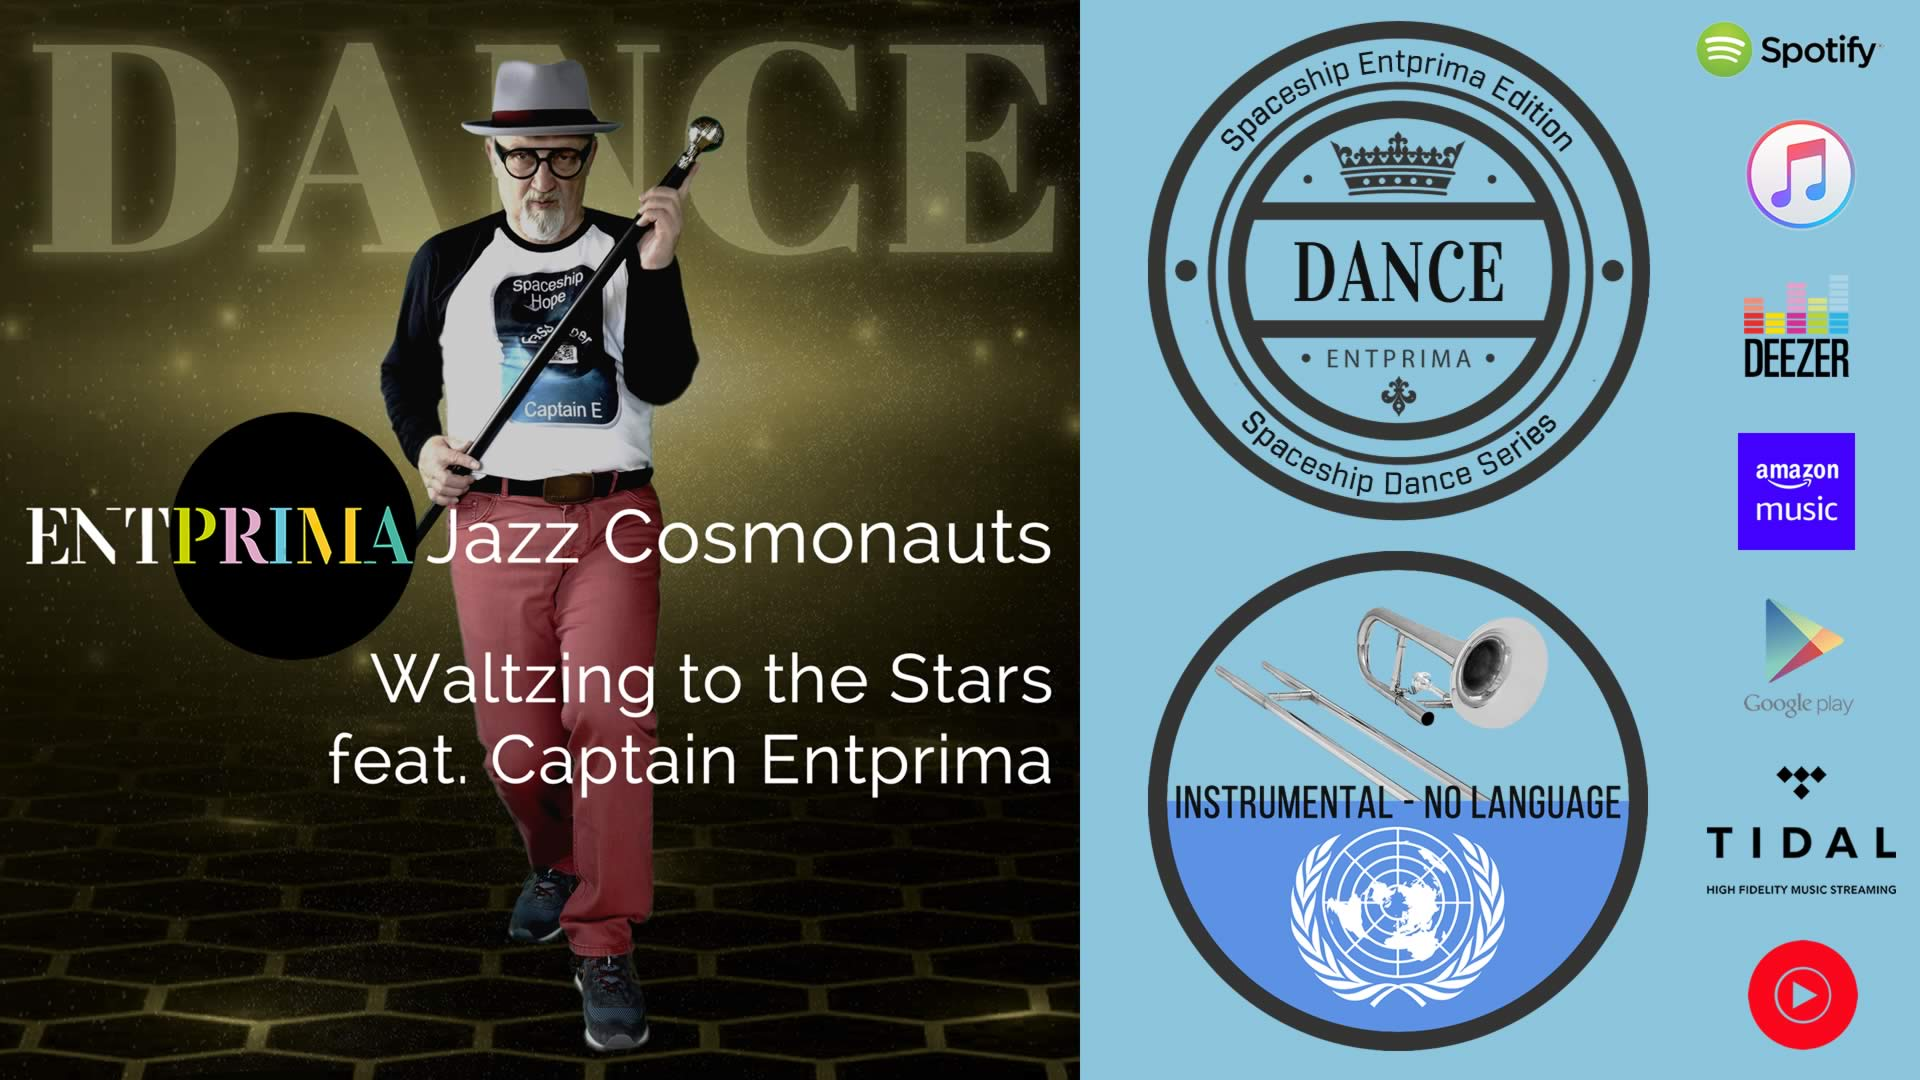 Waltzing to the Stars - Entprima Jazz Cosmonauts